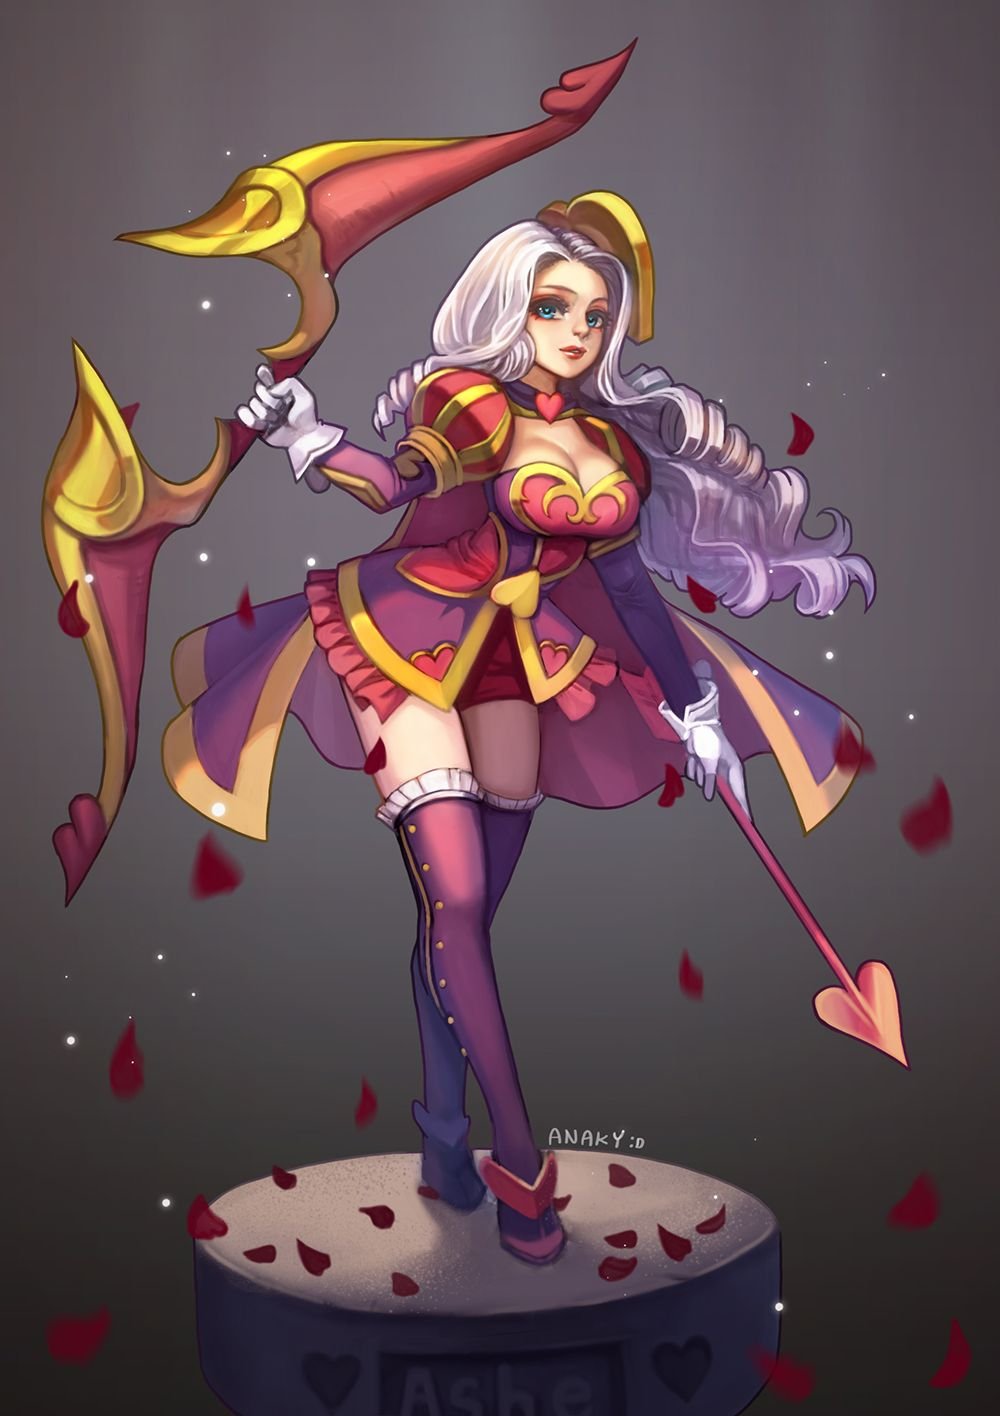 lol illust) Heartseeker Ashe Skin fam art | anaky's game ...